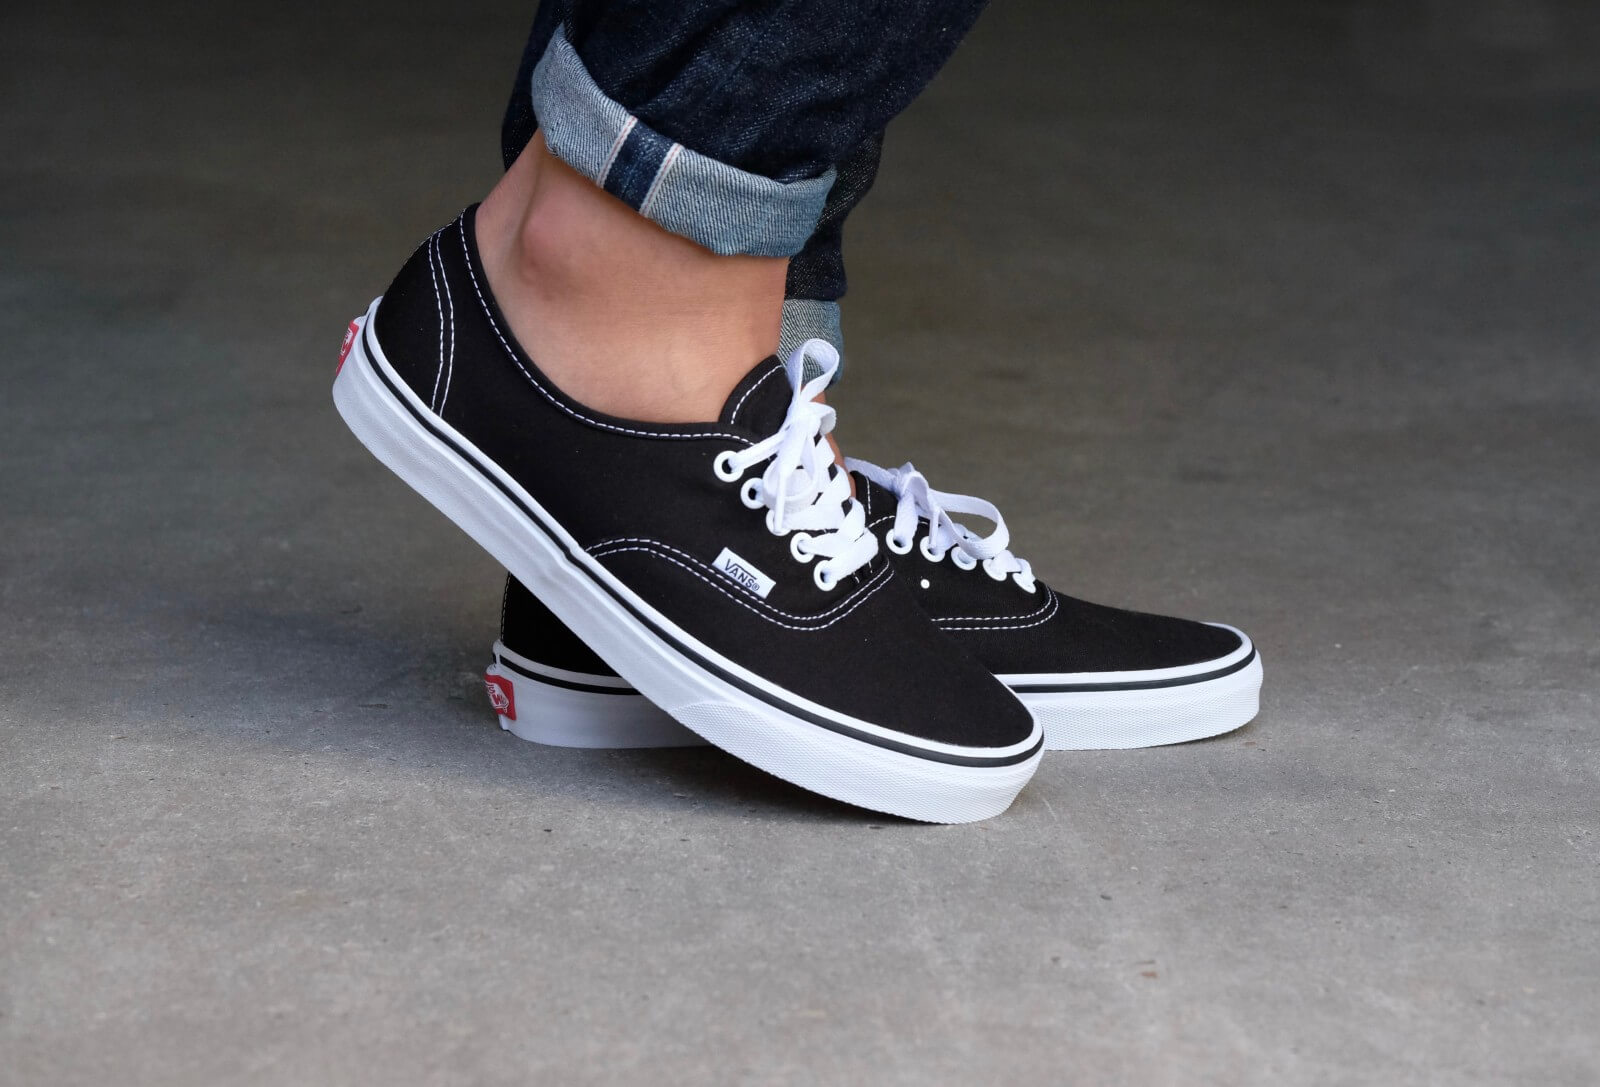 10 Best Vans Shoes Reviewed & Rated in 2019 | WalkJogRun